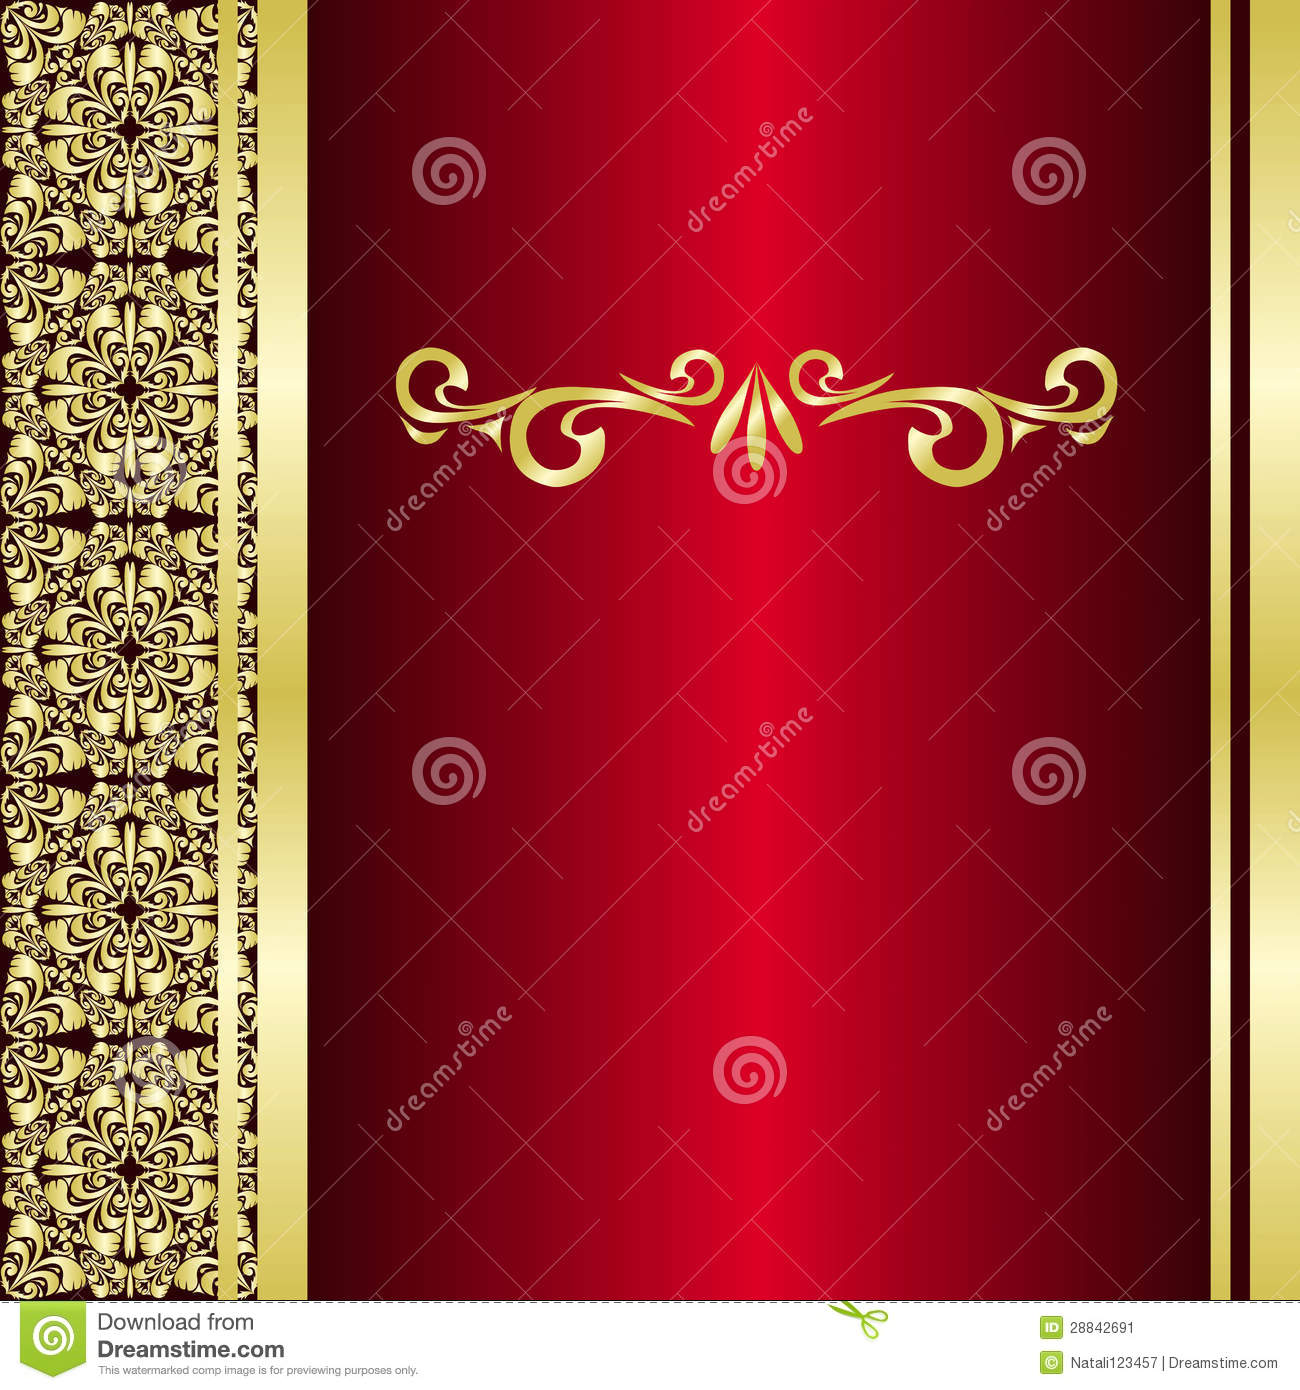 red golden background - photo #21